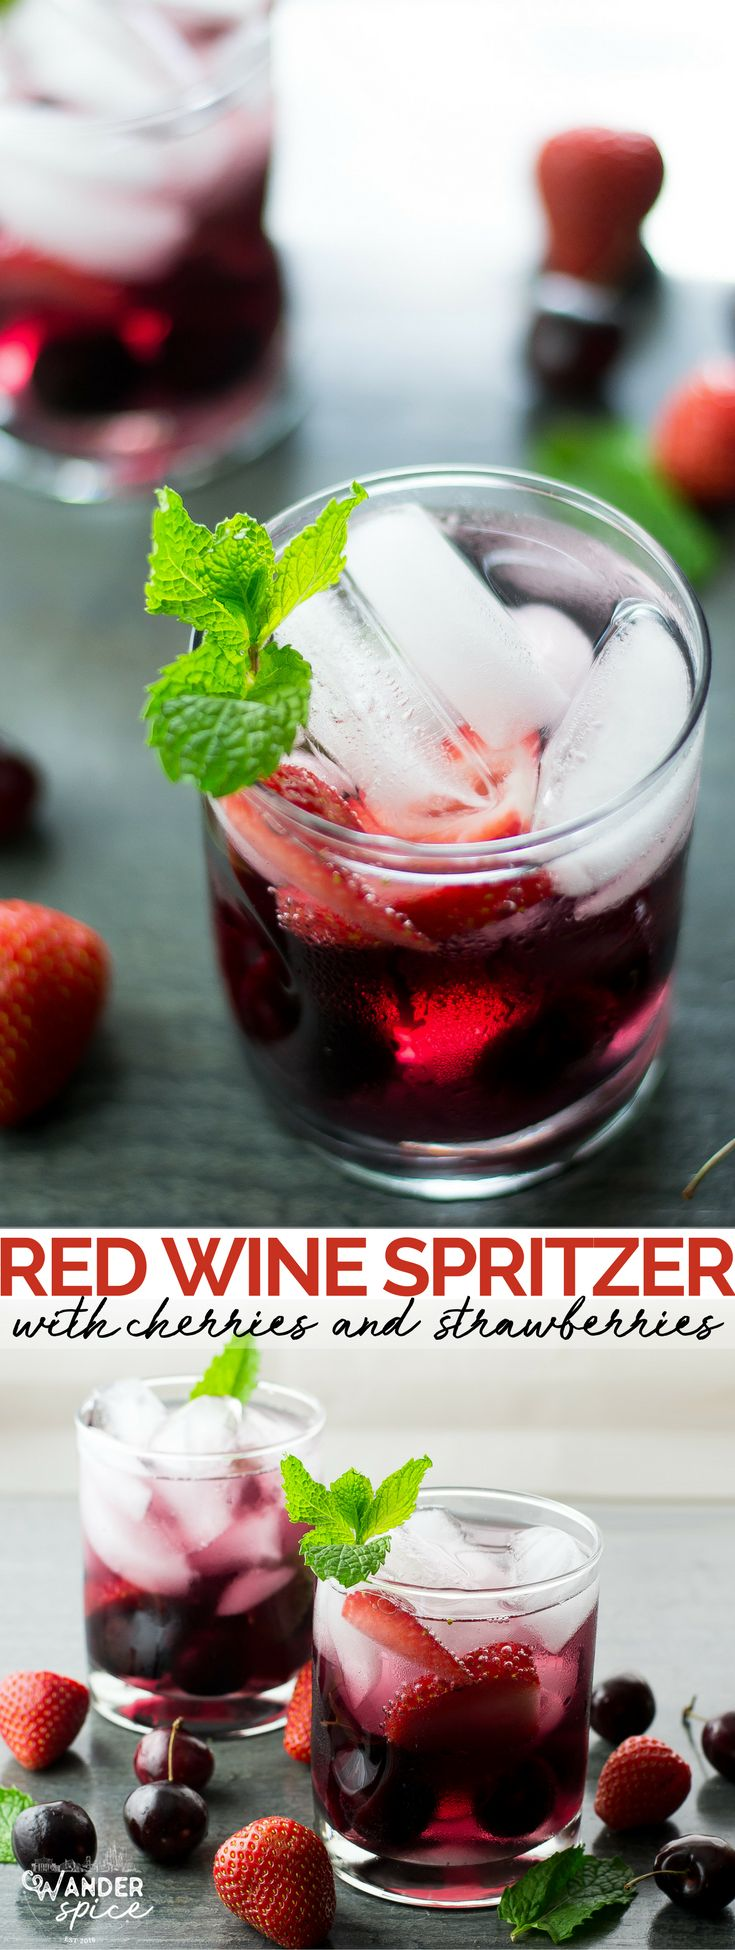 Red Wine Spritzer with Cherries and Strawberries. Red Wine | Cherries | Strawberries | Spritzer | Vegan